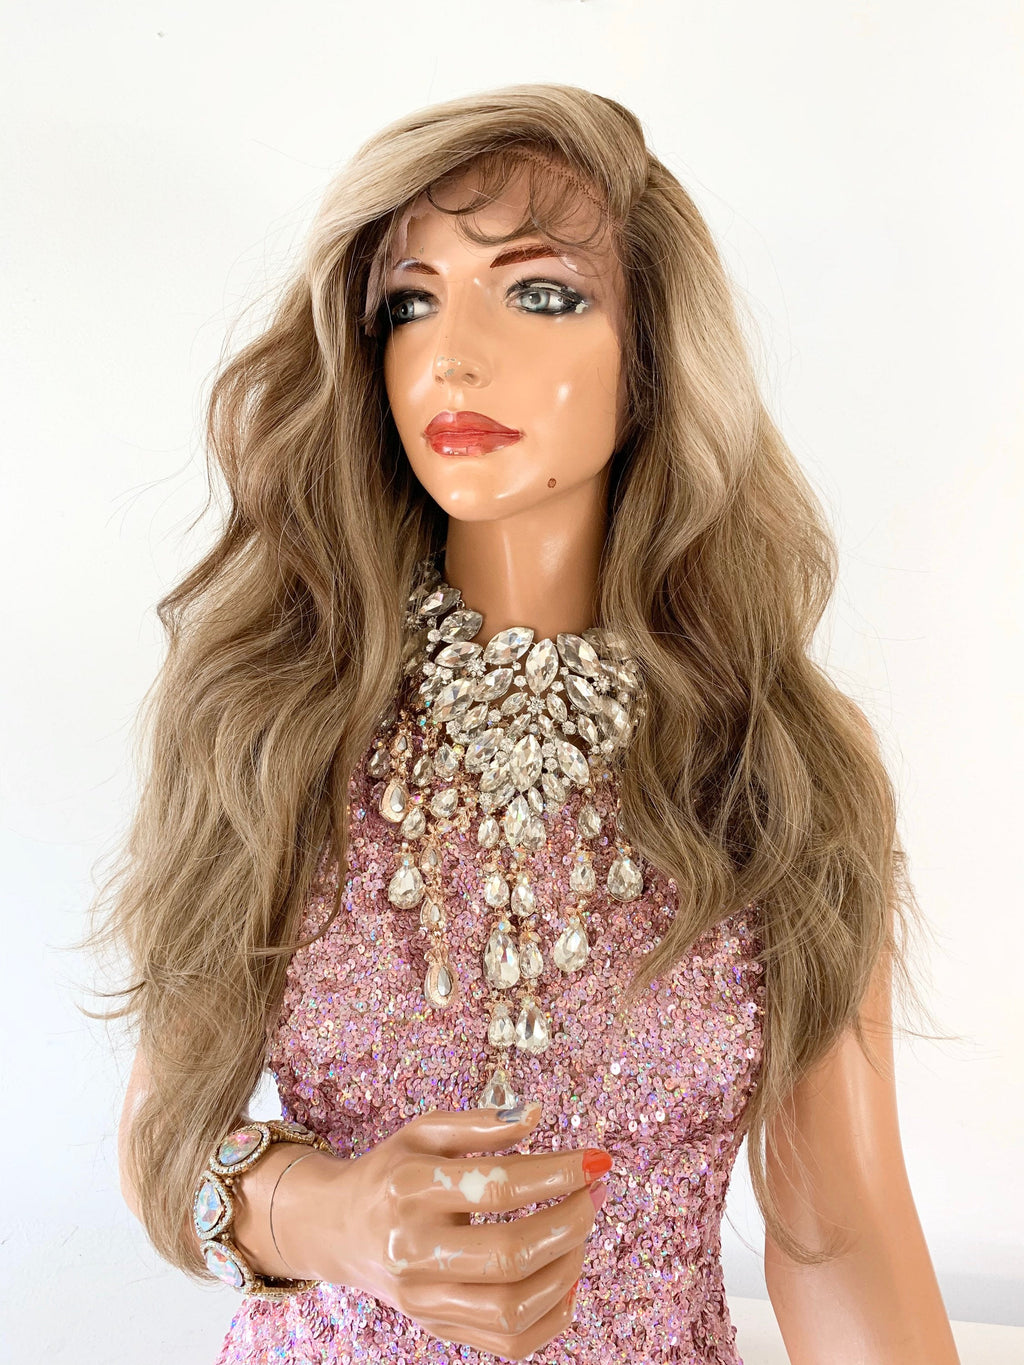 BLONDE BALAYAGE Lace Front Wig,  Loosely Curled Hair, 22 Inches Long